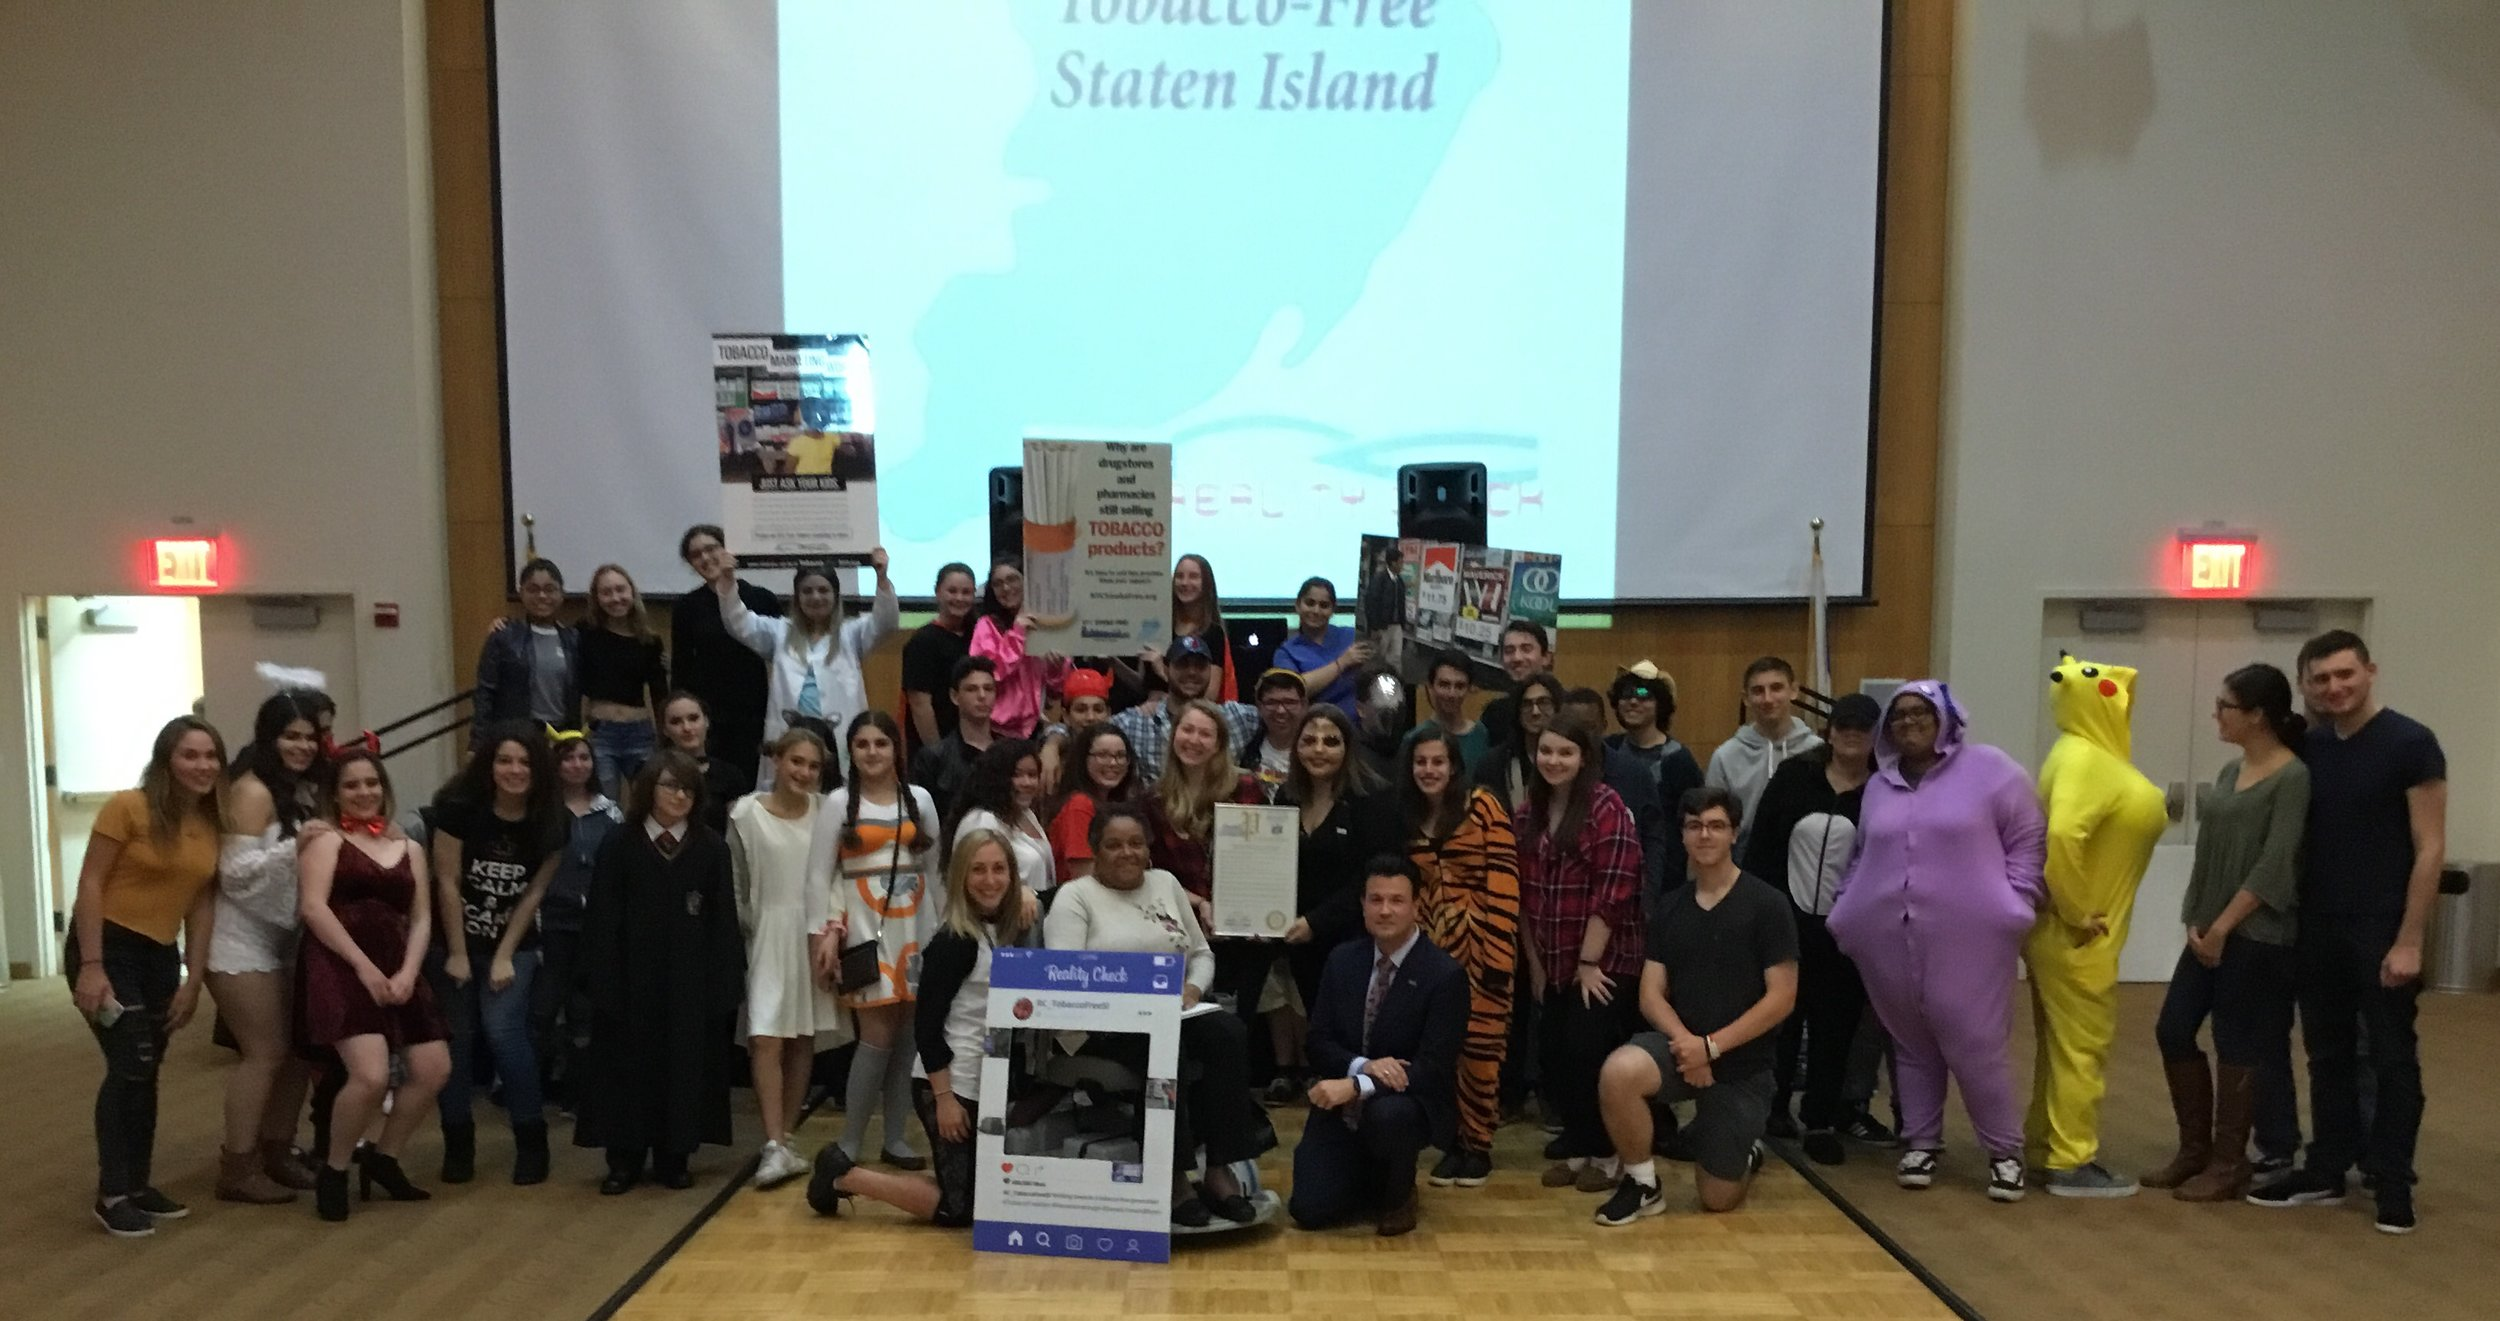 RC of Staten Island  - Reality Check of Tobacco-Free Staten Island hosted an educational event with speaker Marie Wilkins from the CDC commercial, tips from Former Smokers commercial.  We were presented with a proclamation from Senator Lanza's office deeming Friday 13th as Seen Enough Tobacco Day.  Youth and community members had a fun-filled evening learning about recent legislation passed by city council and unmet needs and active role individuals can play in tackling the impact of tobacco.